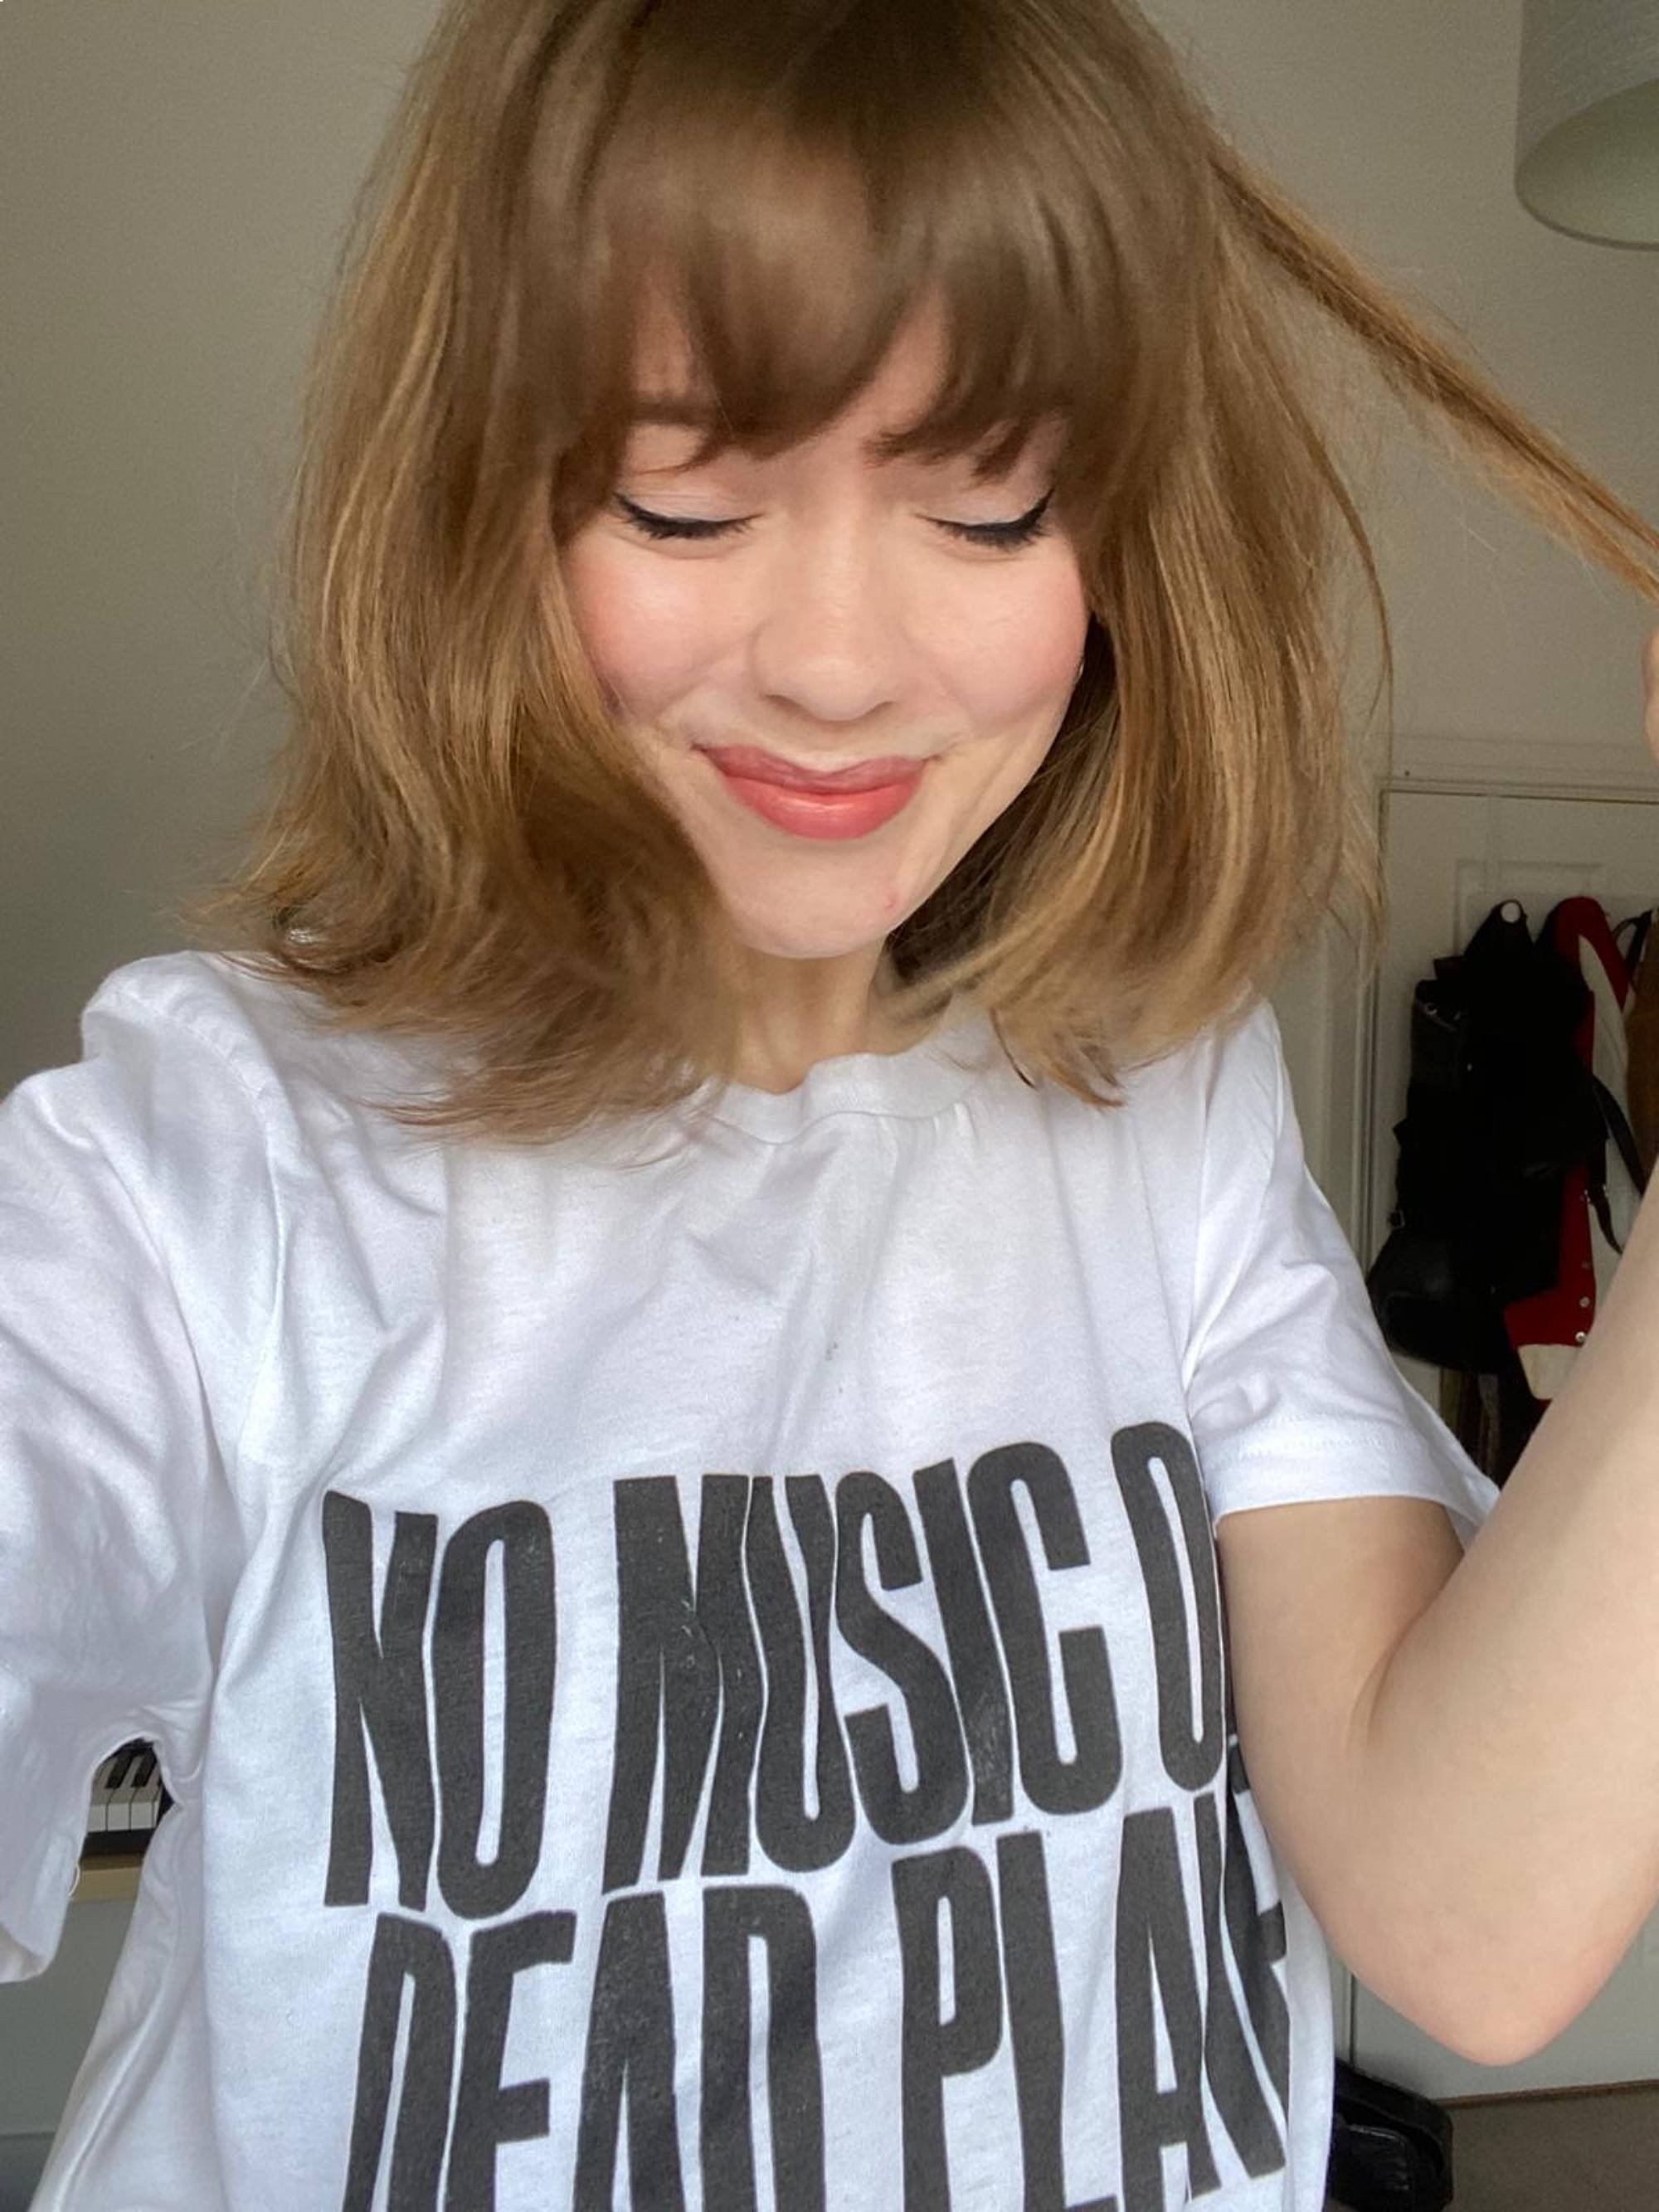 Maisie Peters lends her support to No Music On A Dead Planet. Credit: Press